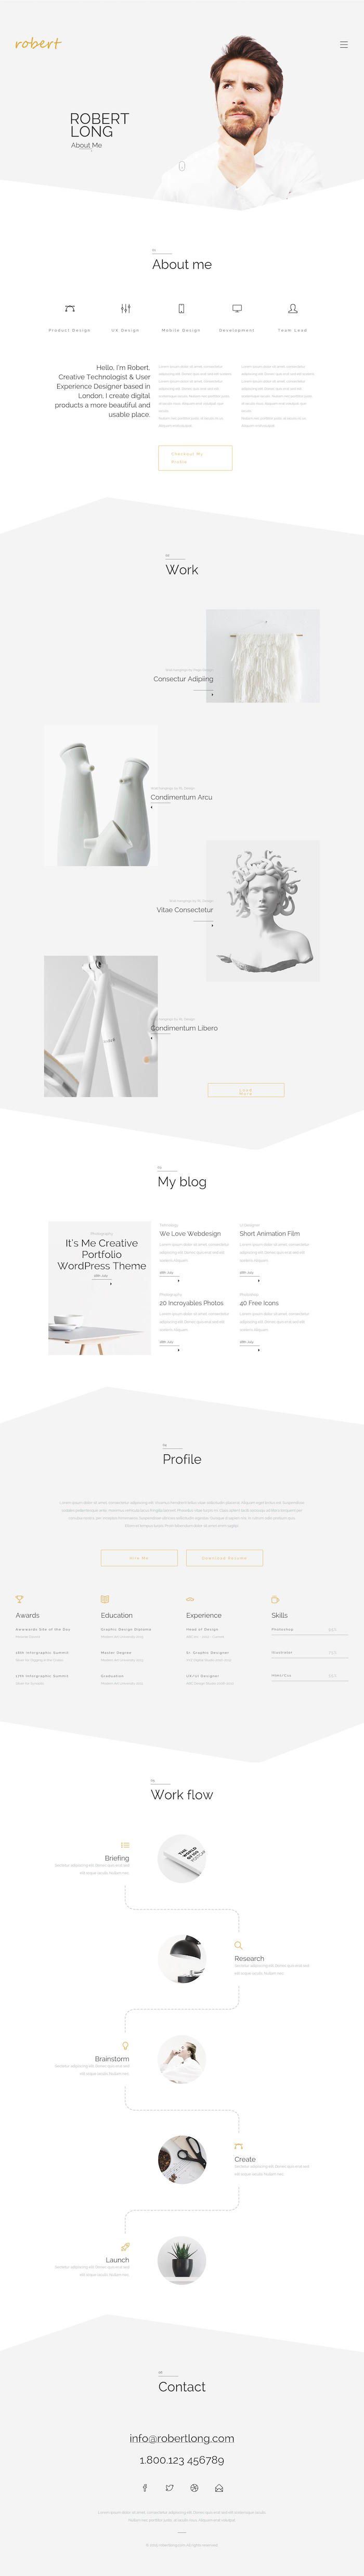 It's Me | Creative personal portfolio website design resume web design designer